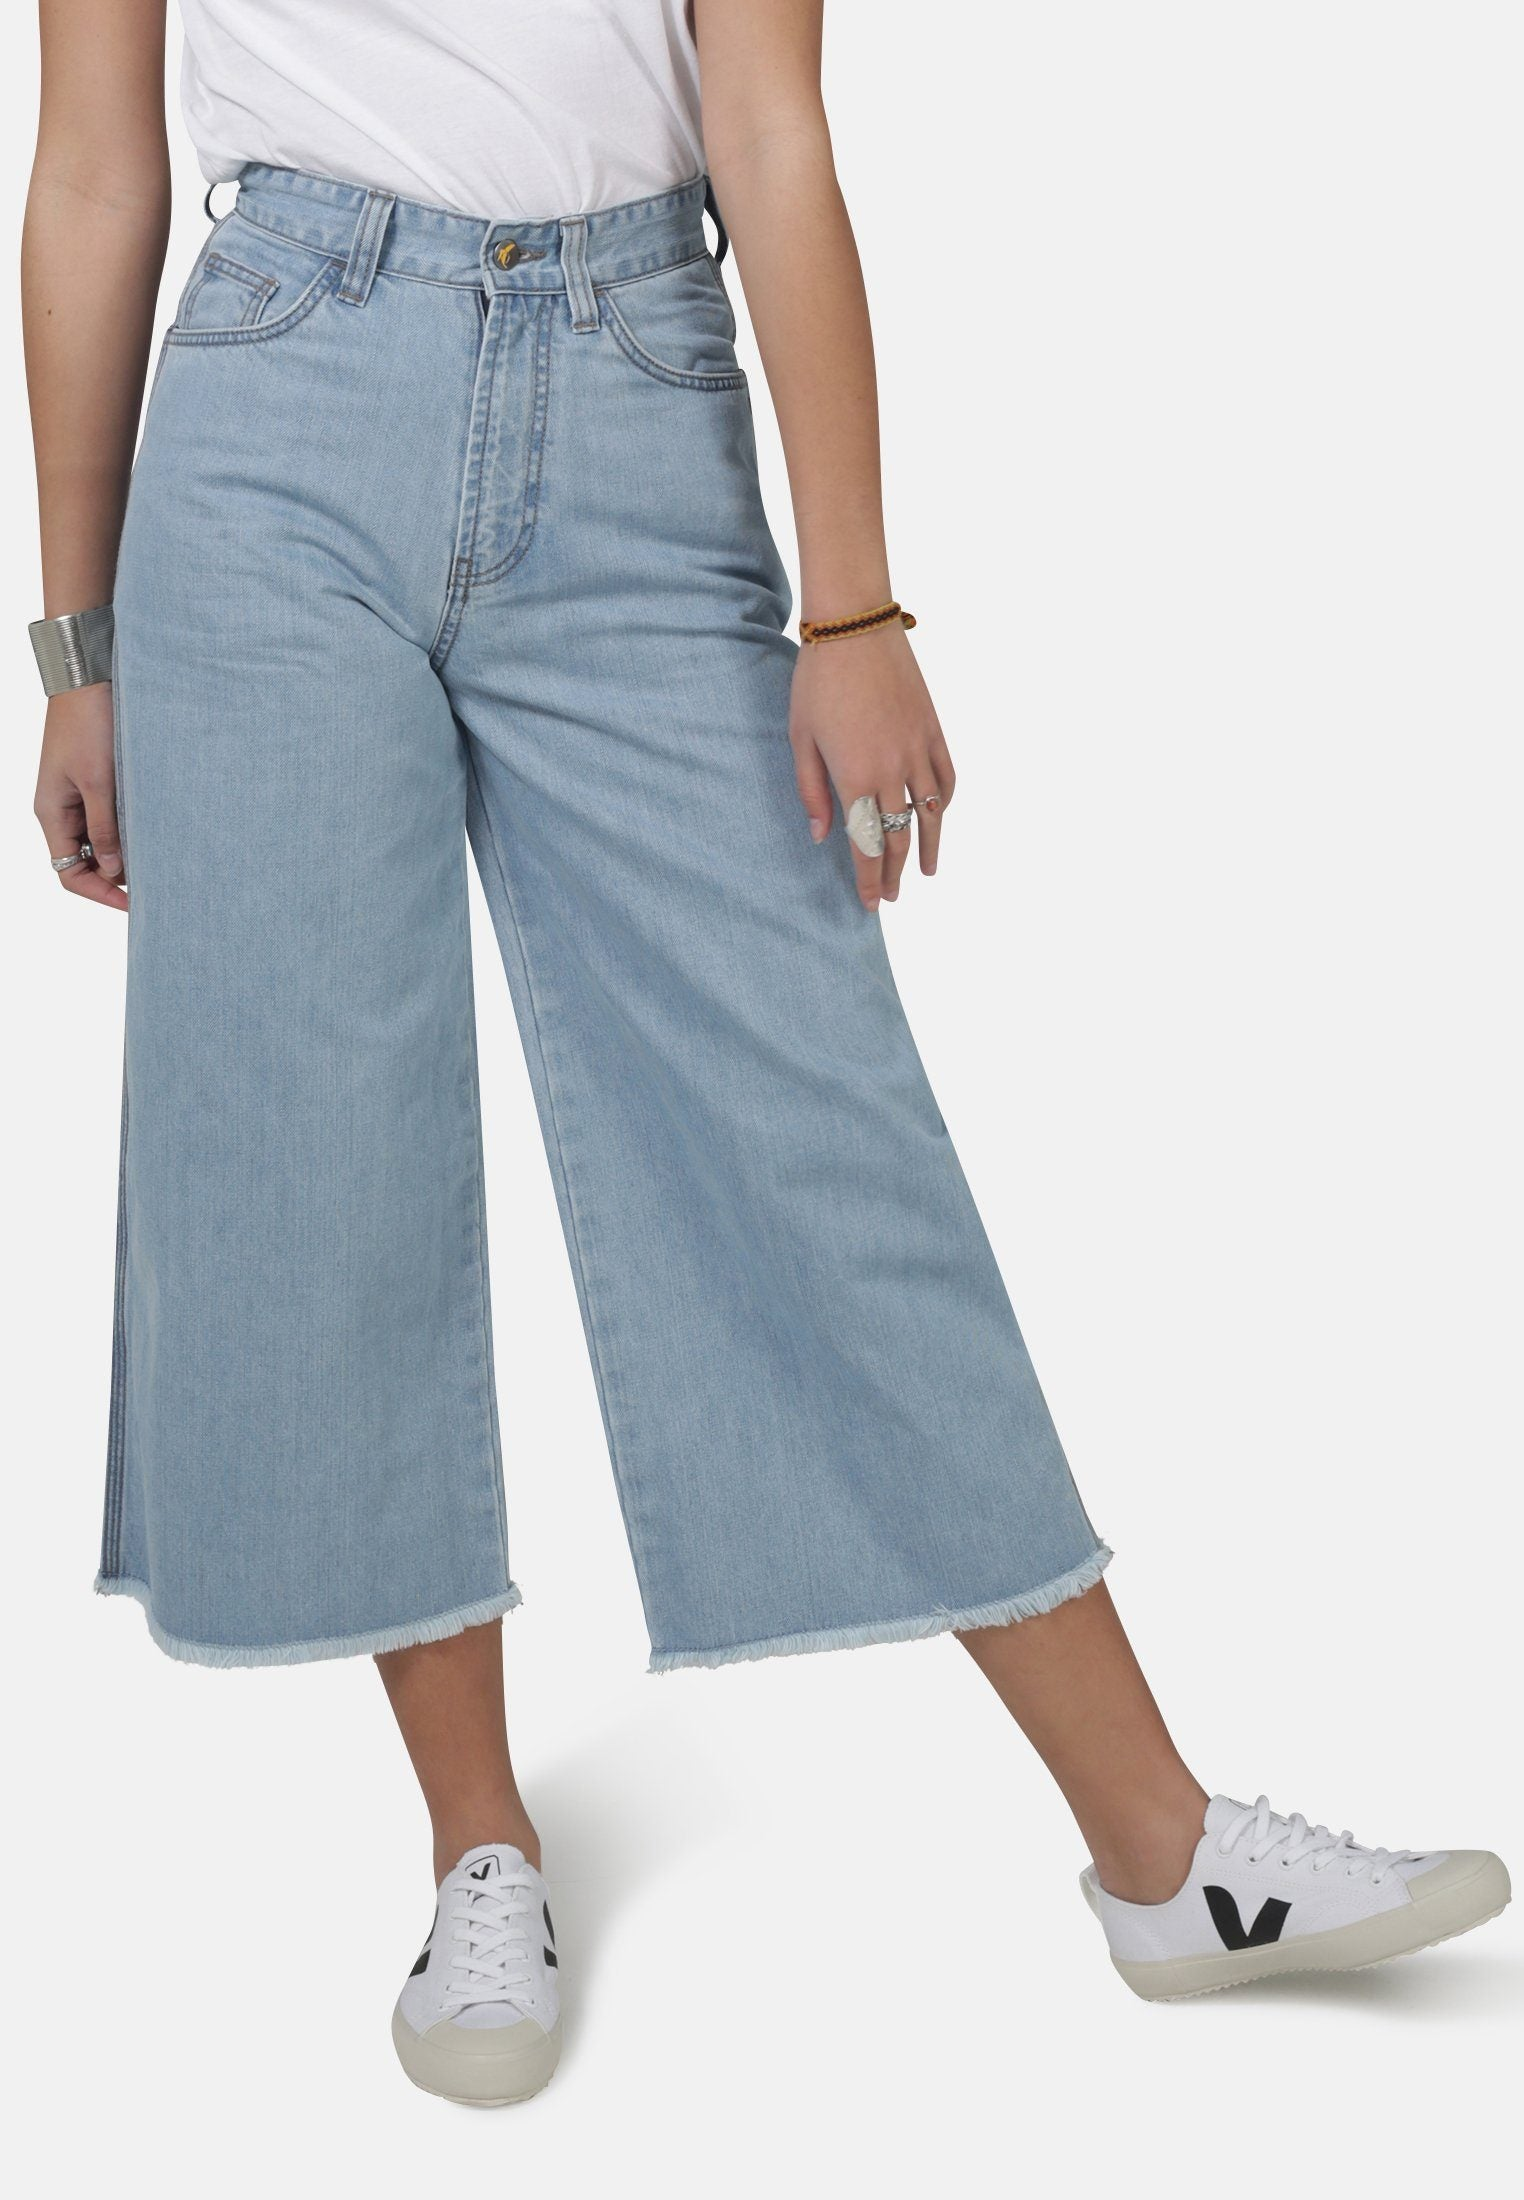 Light Denim Crop Flare Jeans | 100% Organic Cotton | by MONKEE Genes